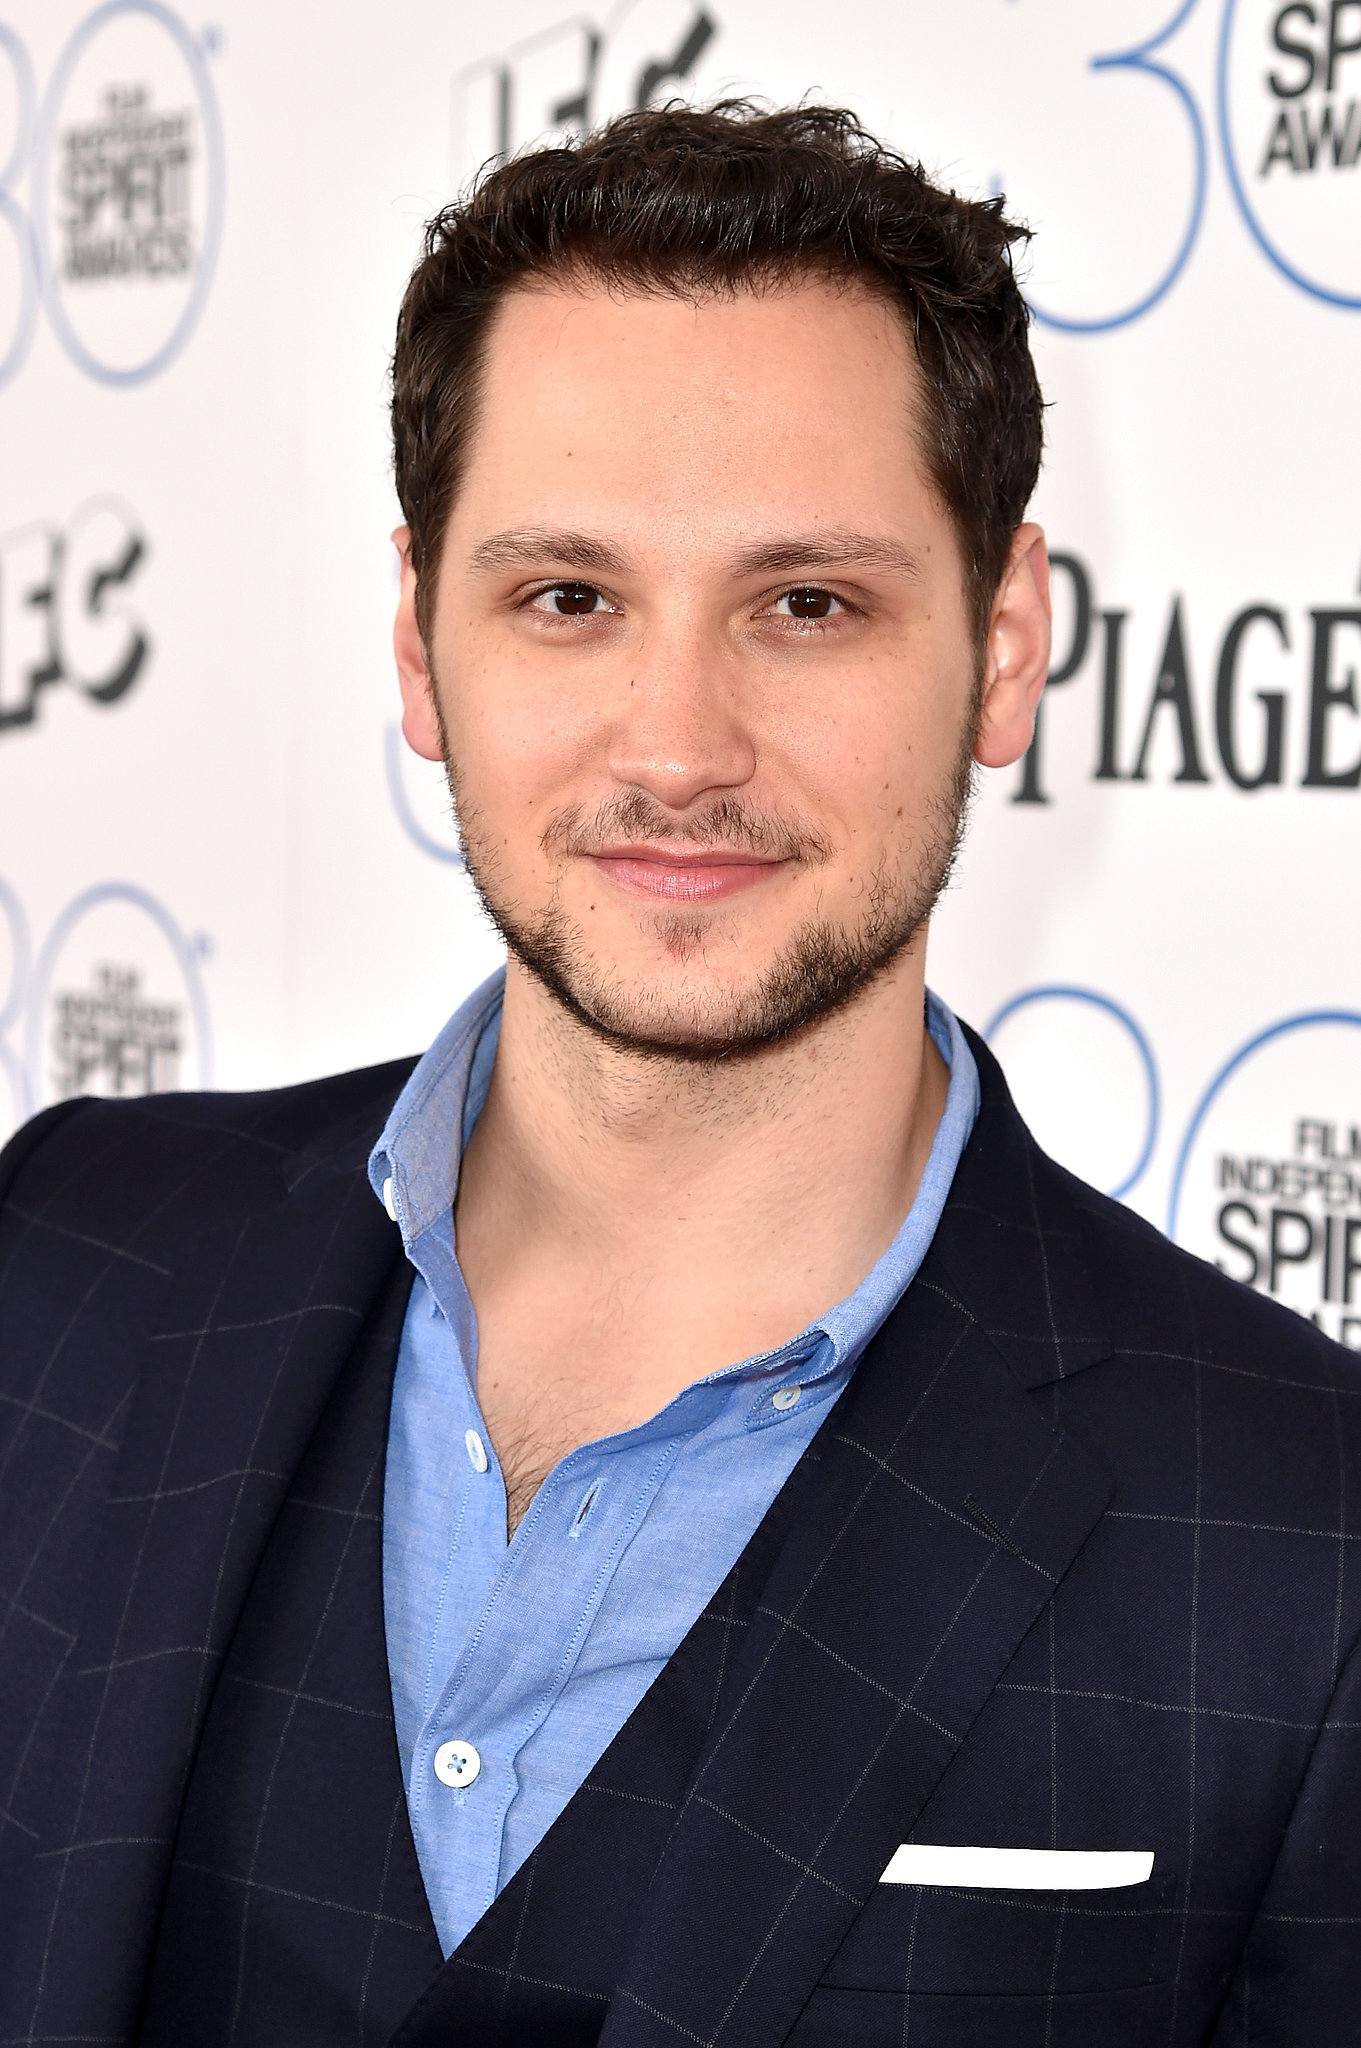 The 30-year old son of father (?) and mother(?), 178 cm tall Matt McGorry in 2017 photo